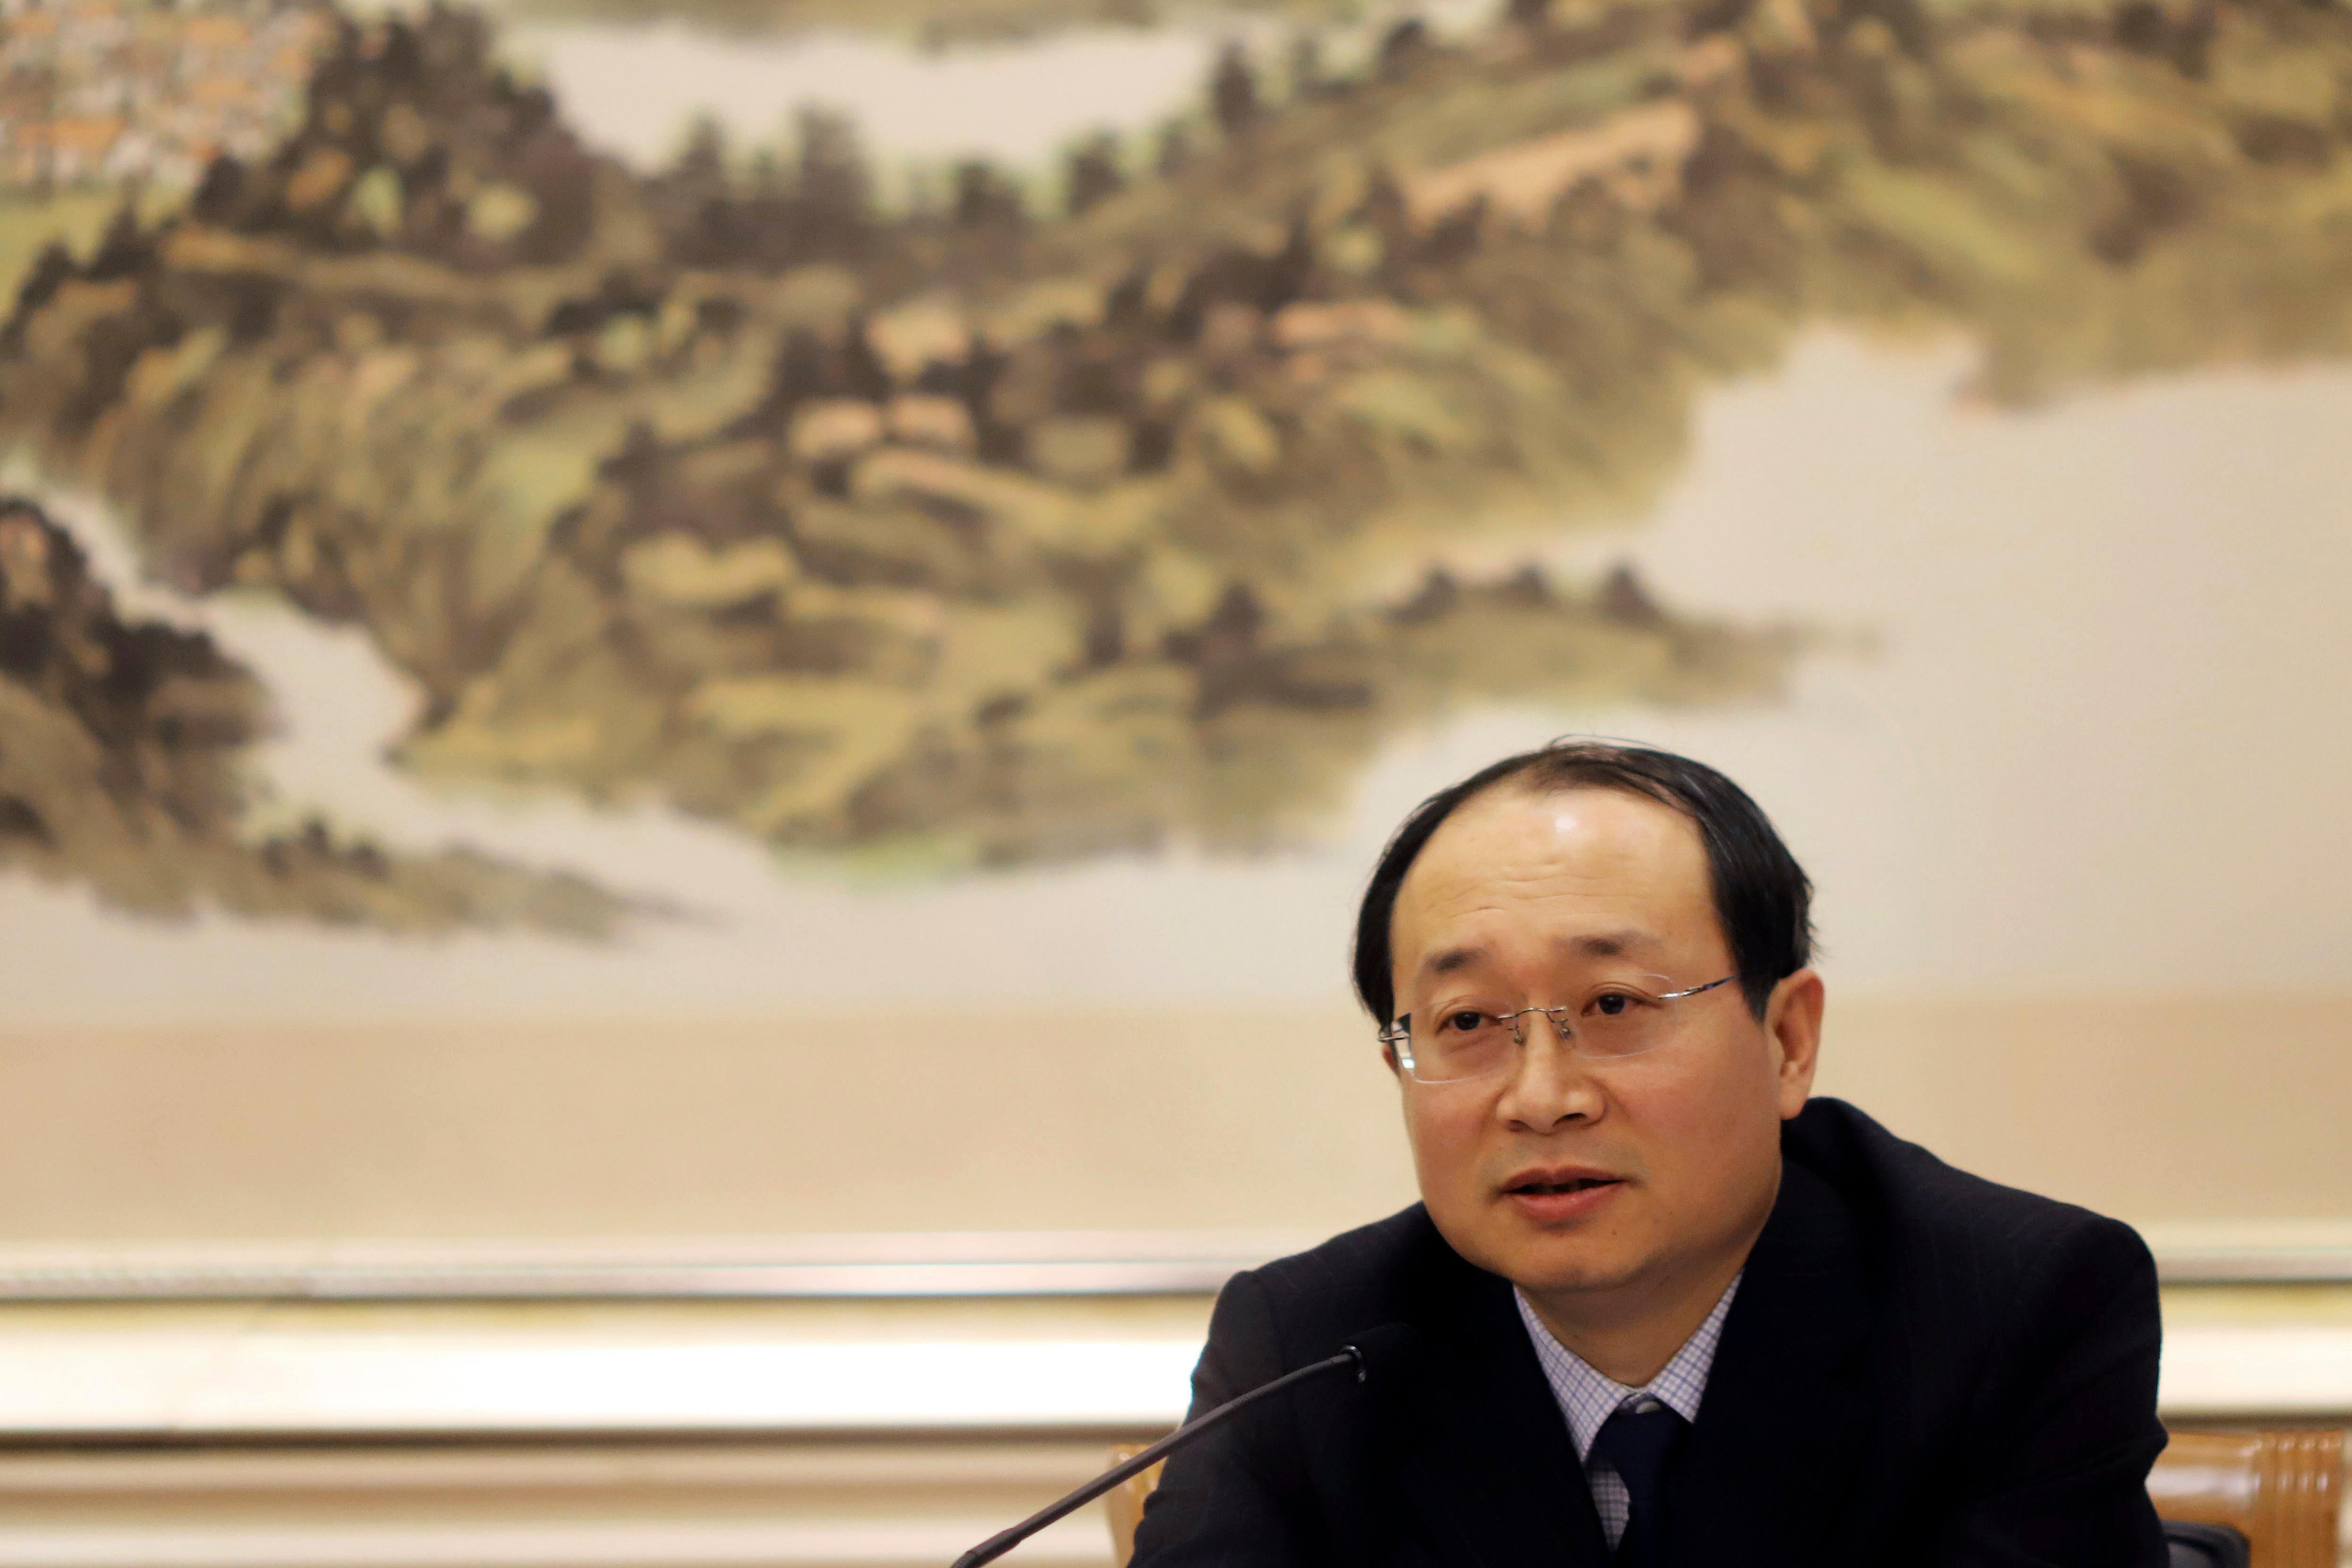 Yu Haibin of the China National Narcotics Control Commission speaks during a press conference held in Beijing, China, Thursday, Dec. 28, 2017. Yu said Thursday there was little evidence showing China was the source of much of the chemicals used in the production of the powerful opioid fentanyl. (AP Photo/Ng Han Guan)